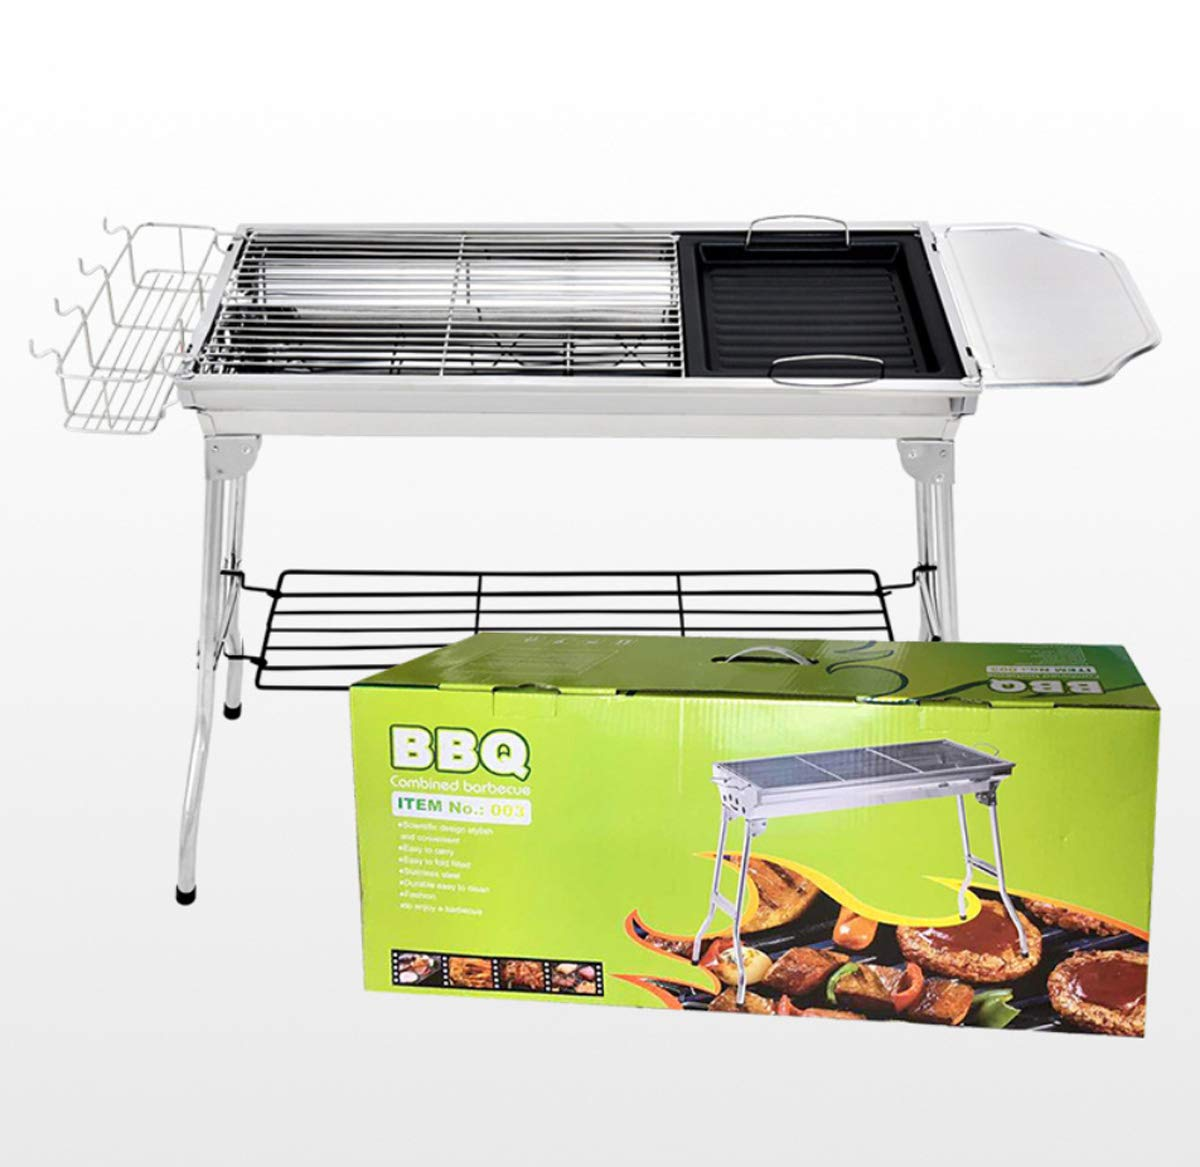 ZXMXY BBQ Grill Outdoor-Holzkohle Edelstahl Grill Carbon-Ofen Portable Zusammenklappbare Grill (73  33,5  70Cm)